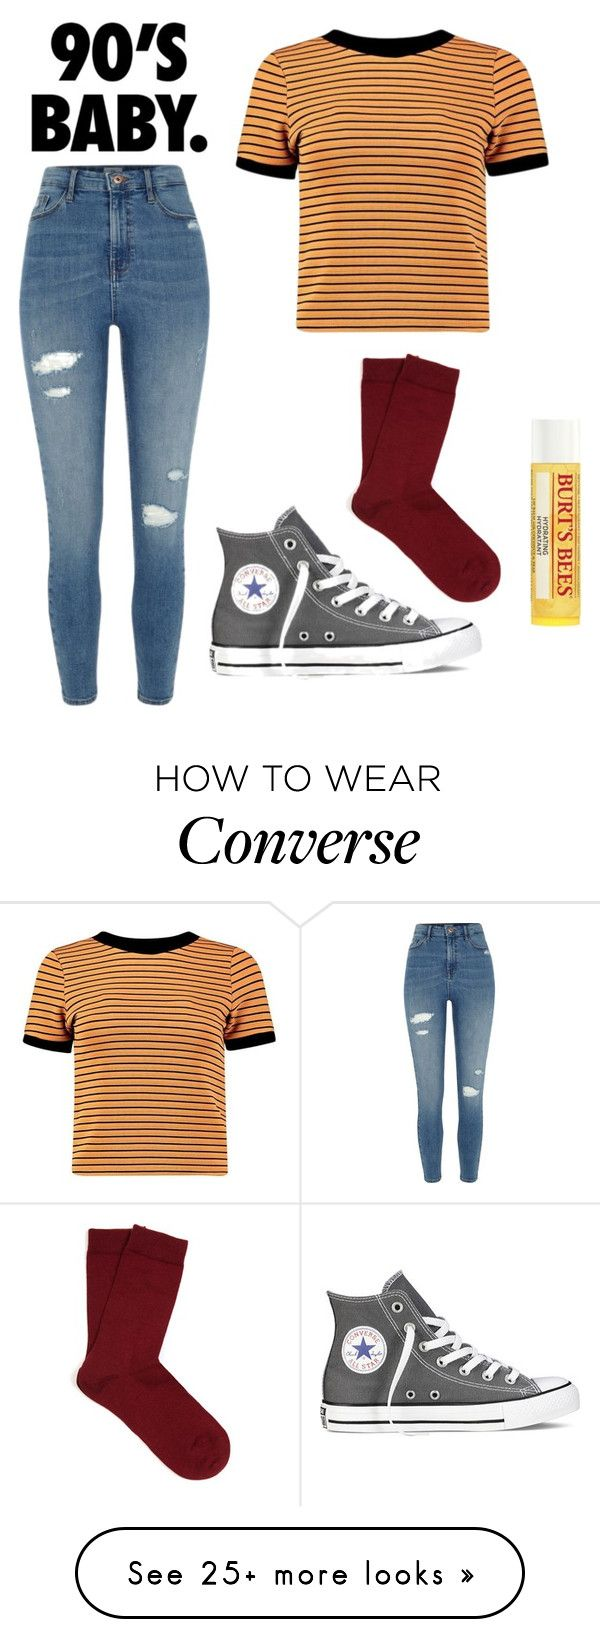 """""""Music /RTD/"""" by imveryconfused on Polyvore featuring River Island, Boohoo, Converse, Falke and Burt's Bees"""